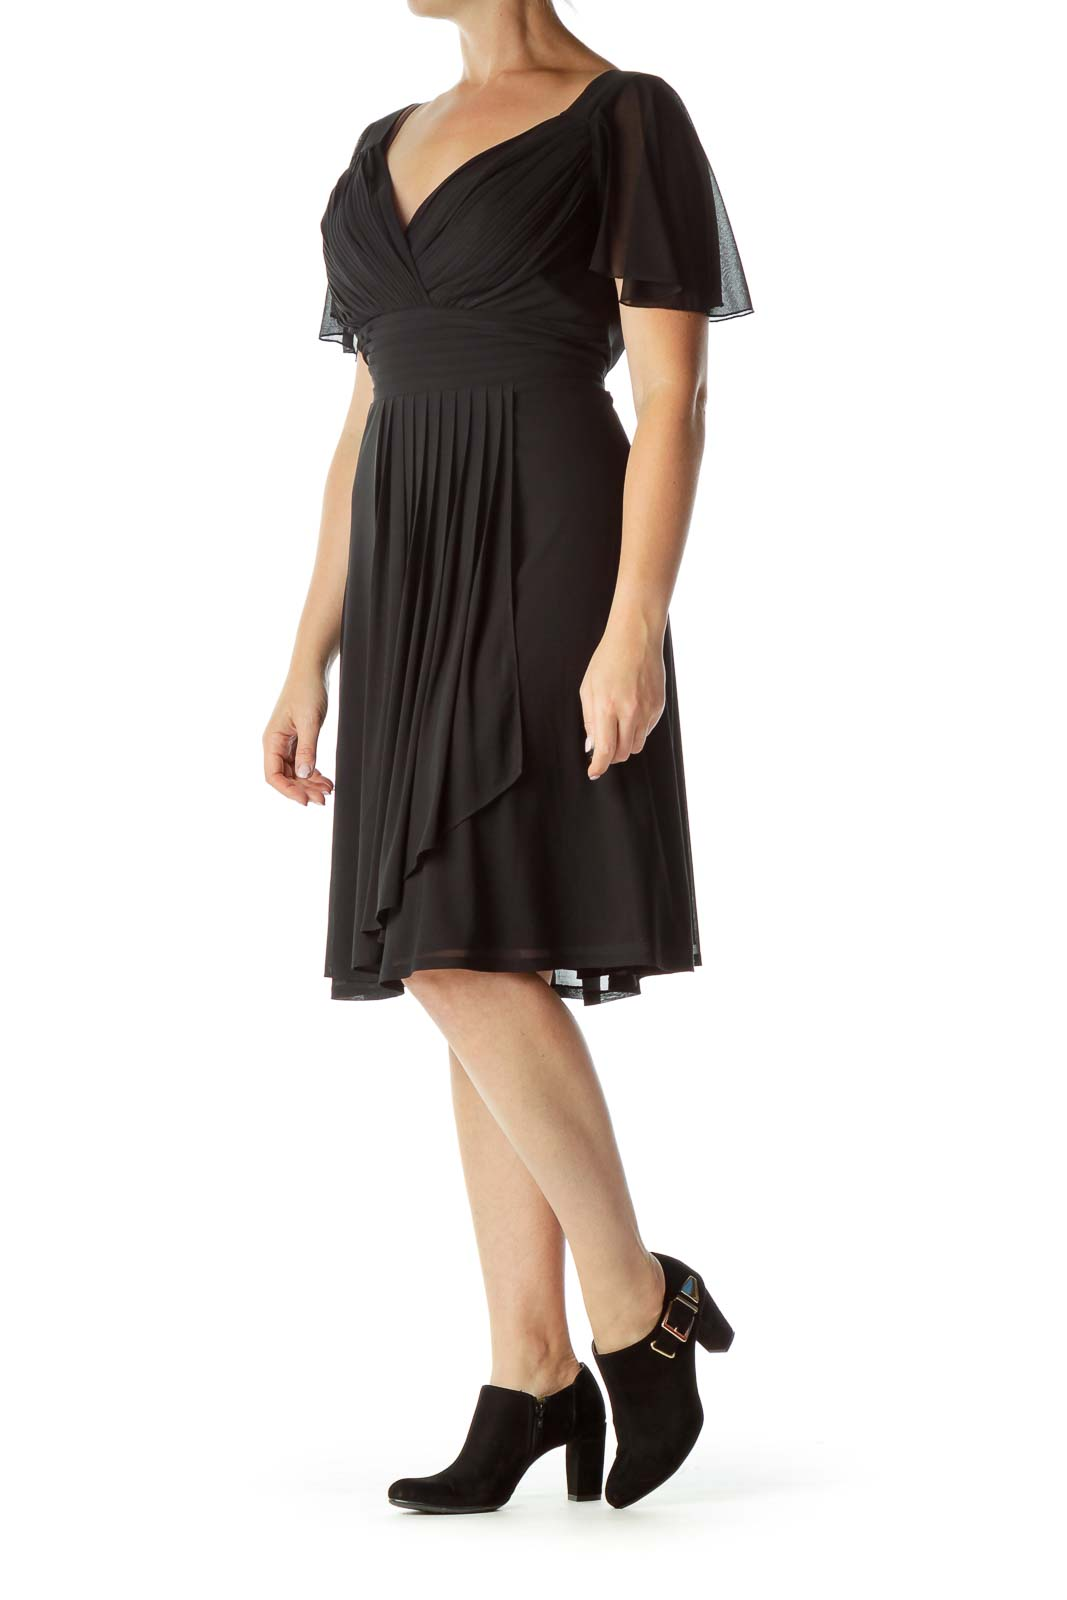 Black Pleated Empire Waist Cocktail Dress